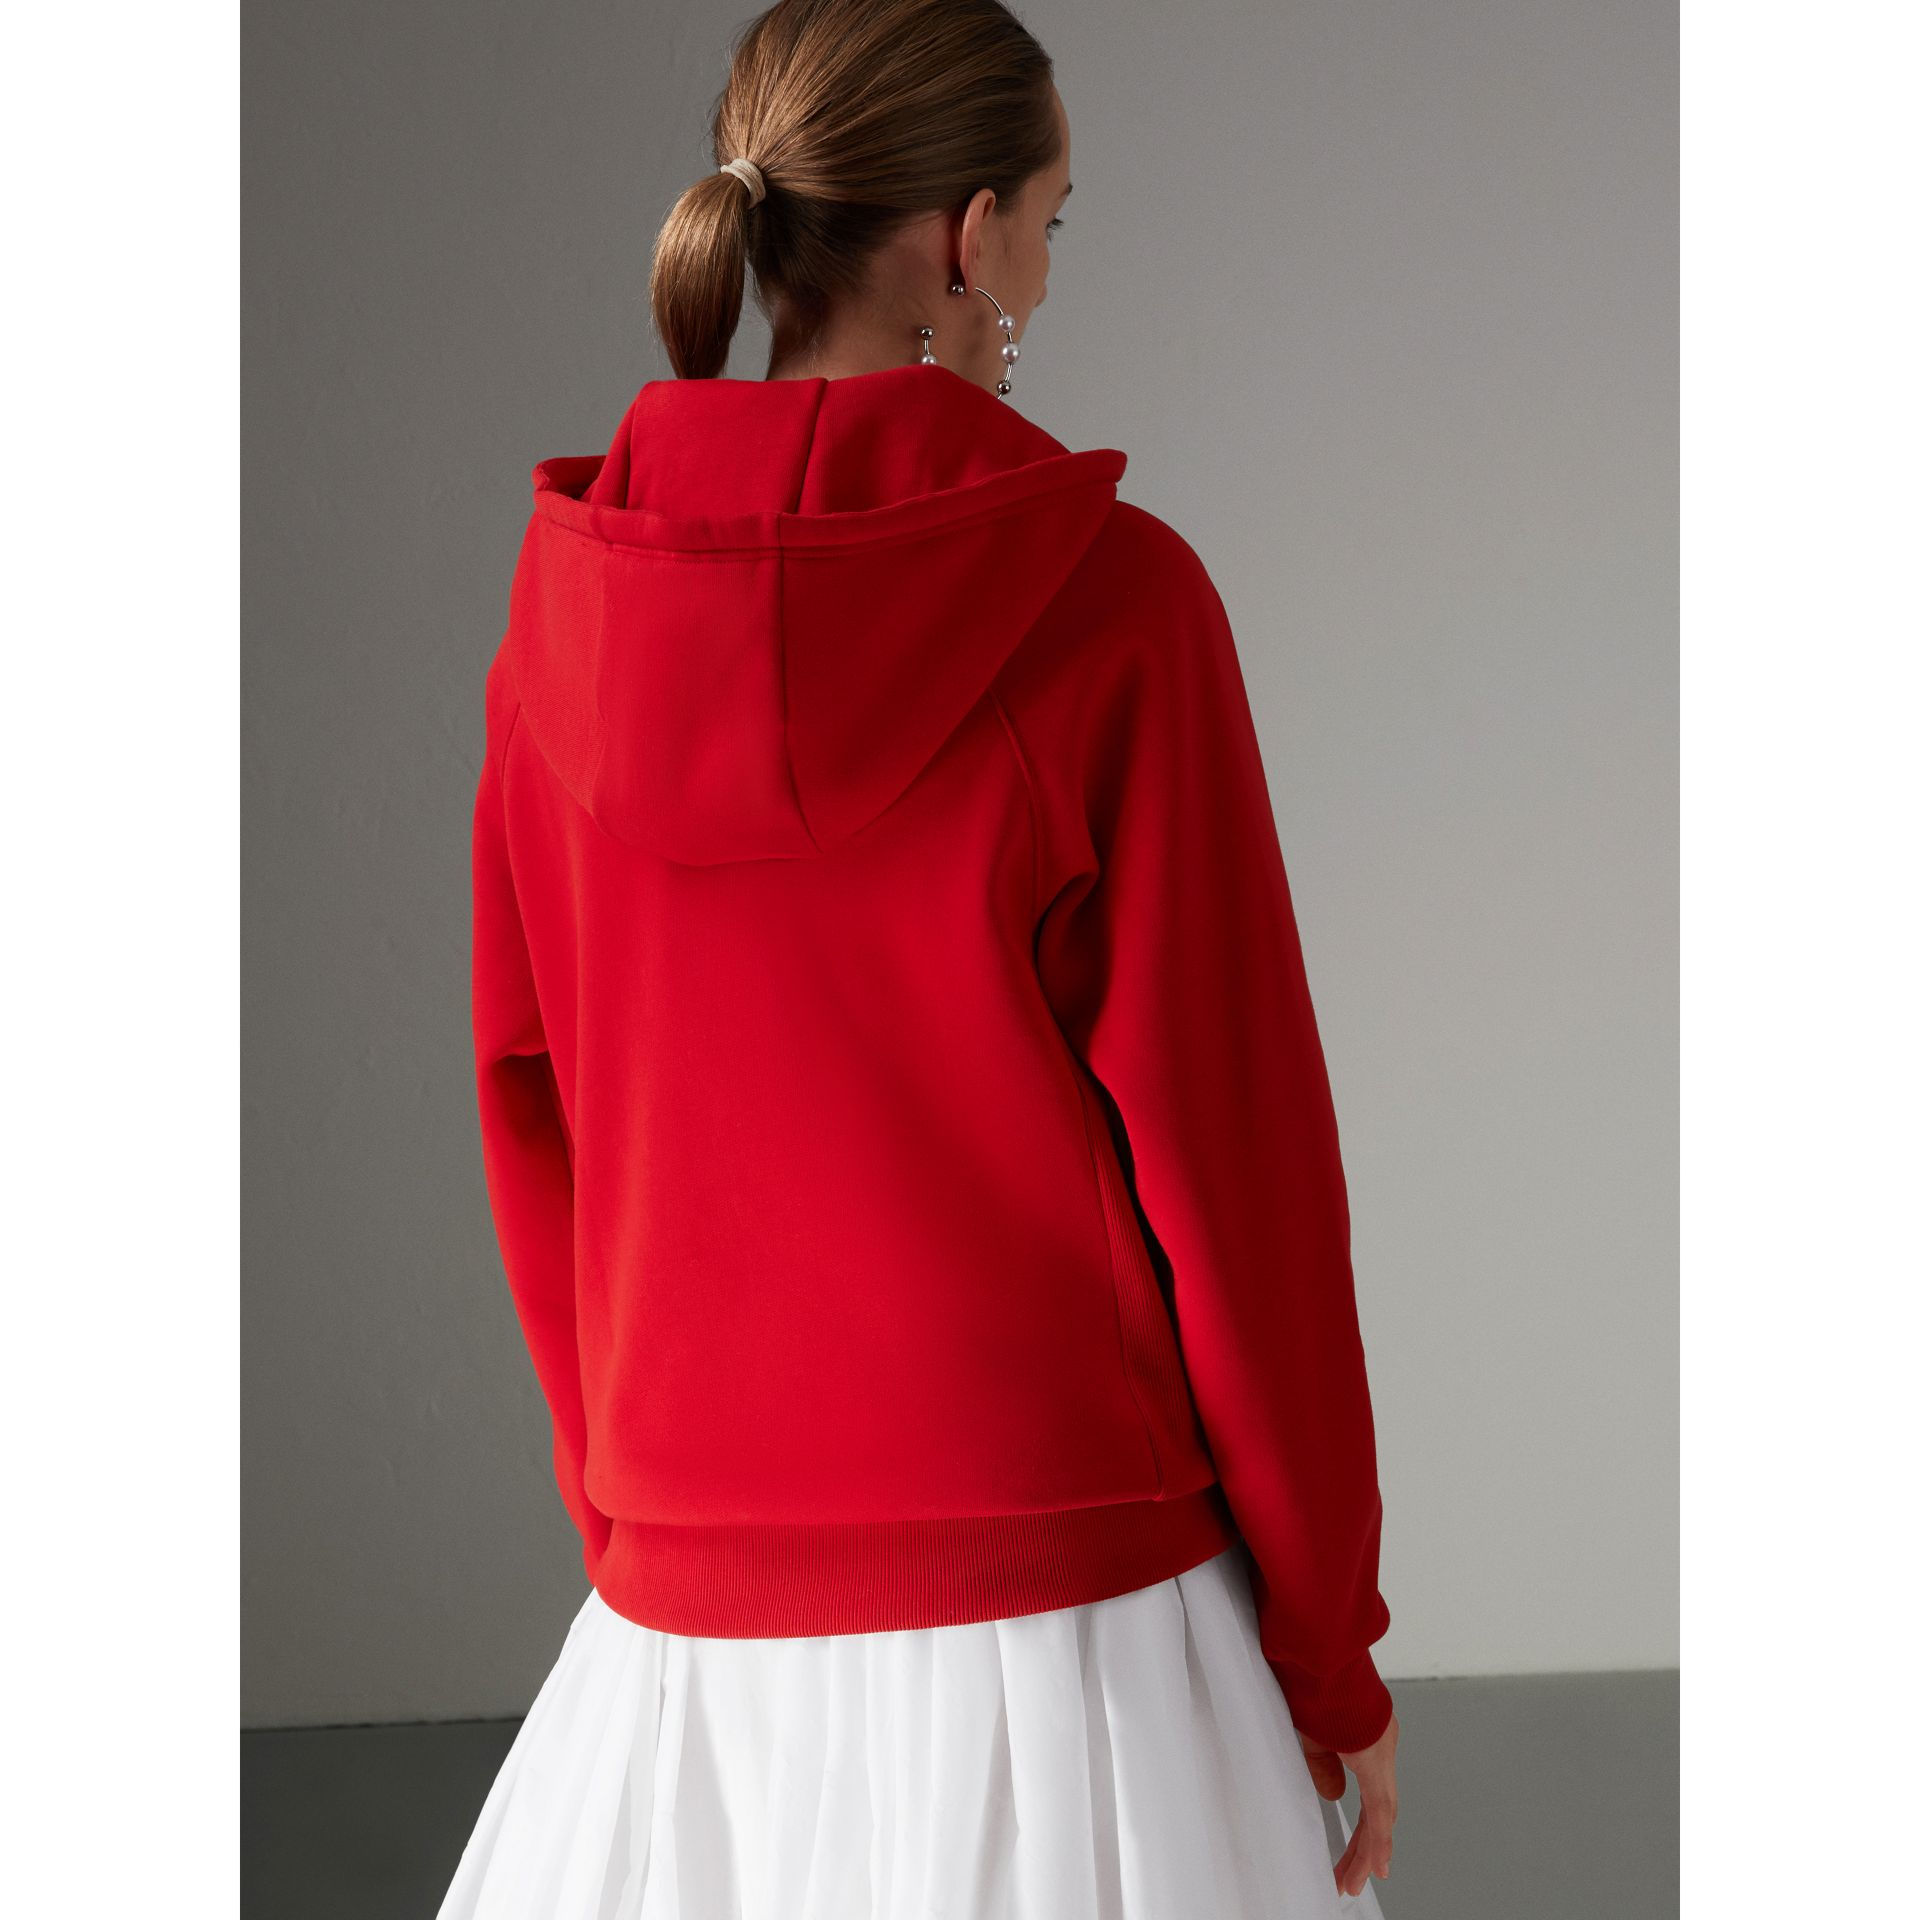 Heart Intarsia Cotton Blend Hoodie in Bright Red - Women | Burberry - gallery image 2